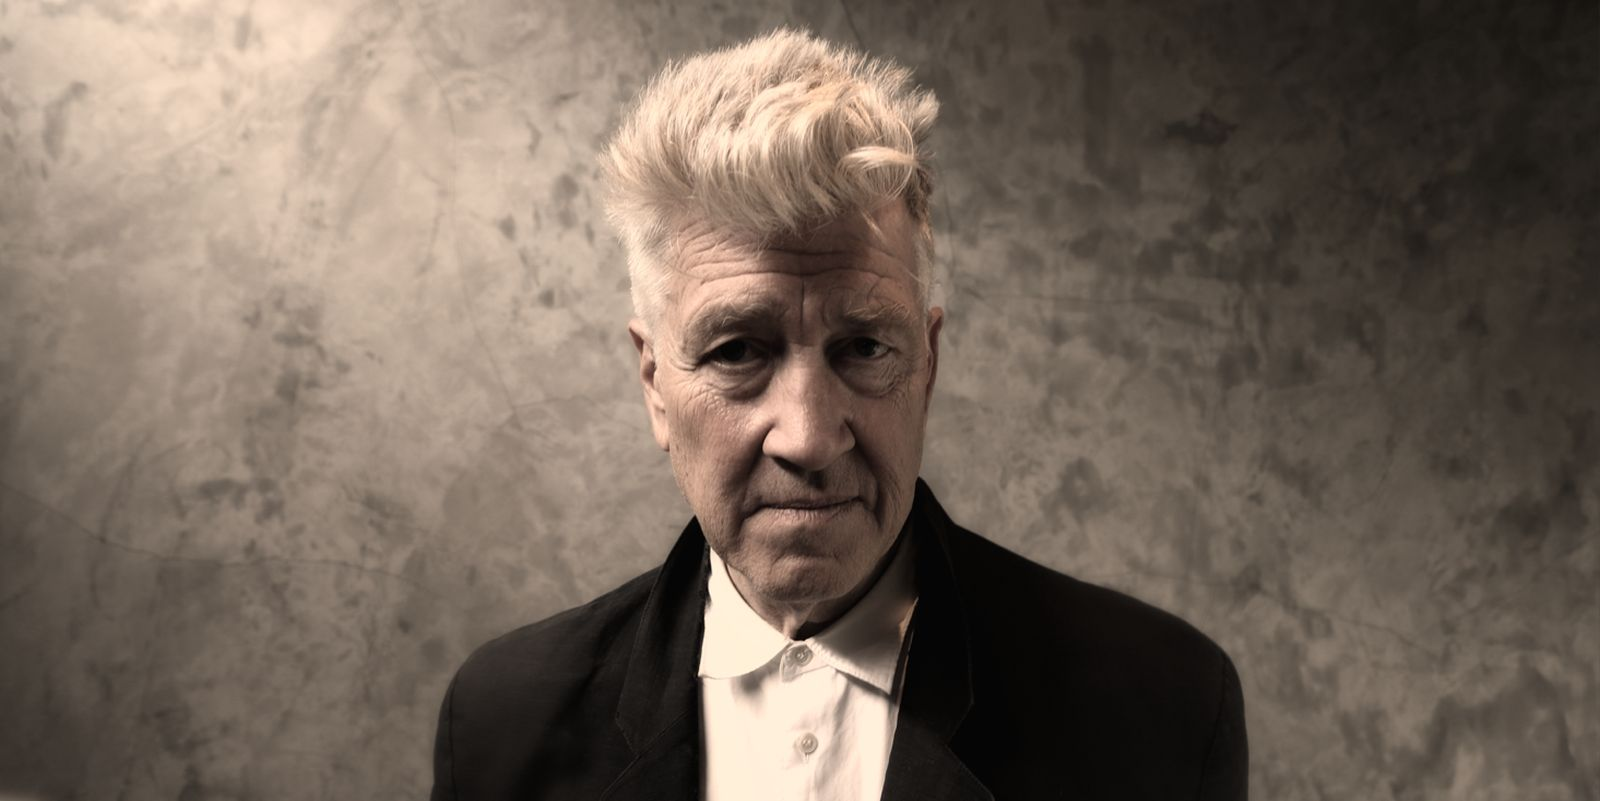 The Beginners Guide David Lynch Director Film Inquiry